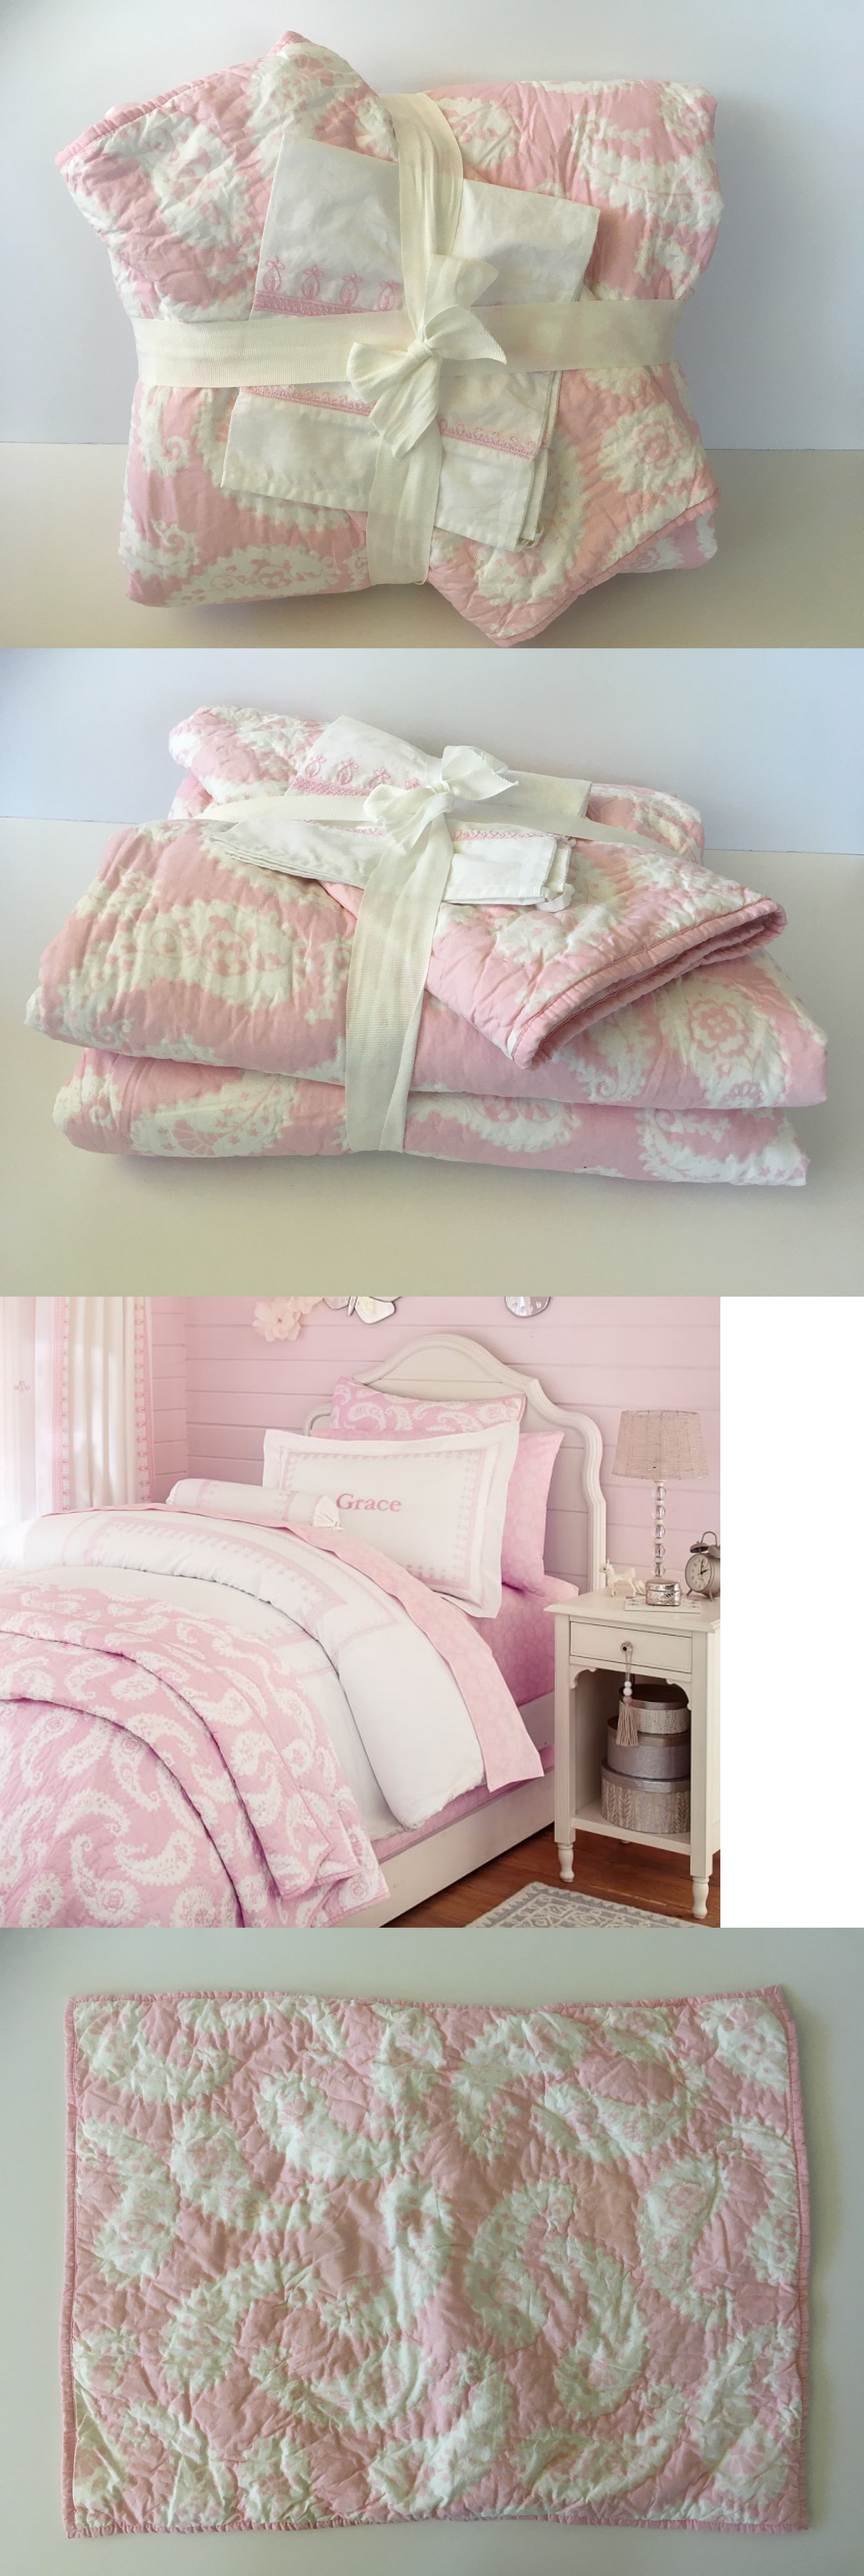 Pillow Shams 16: 16 Pc Pottery Barn Kids Nora Paisley Twin Quilt ...